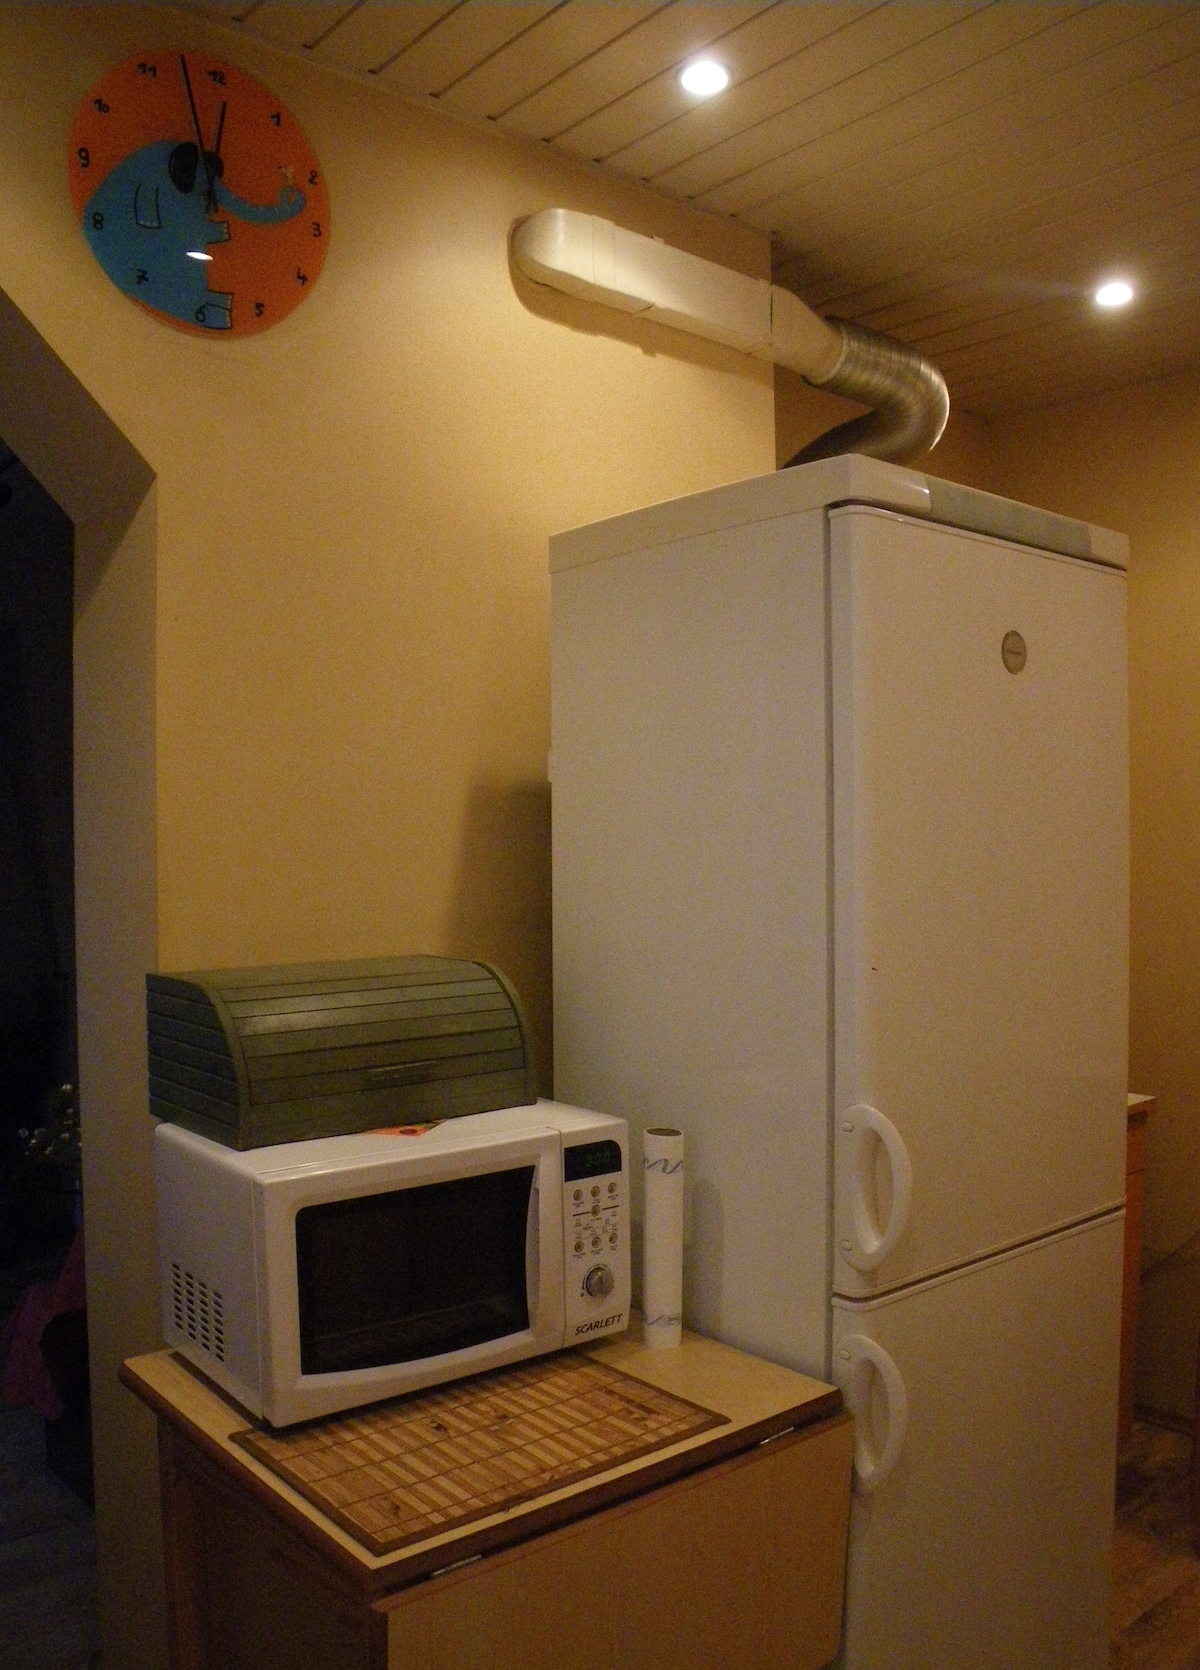 Small kitchen with microwave, refrigerator, gas ring, fully equiped with neccessary table plates,dishes, pots, pan, etc